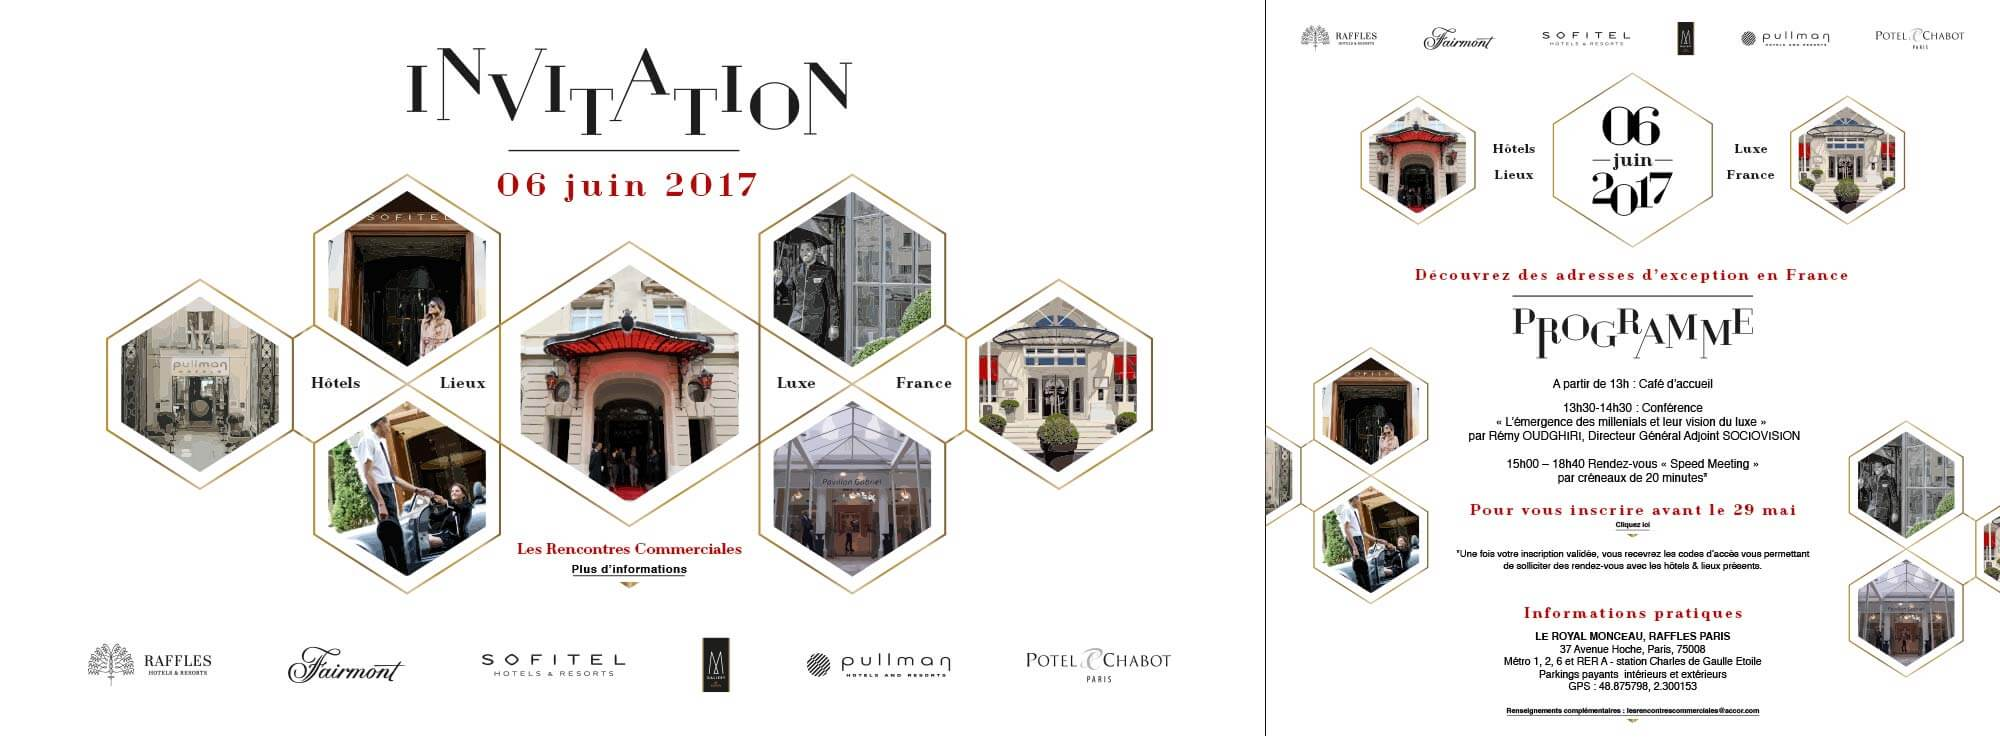 02.accor rencontres commerciales invitation.jpg